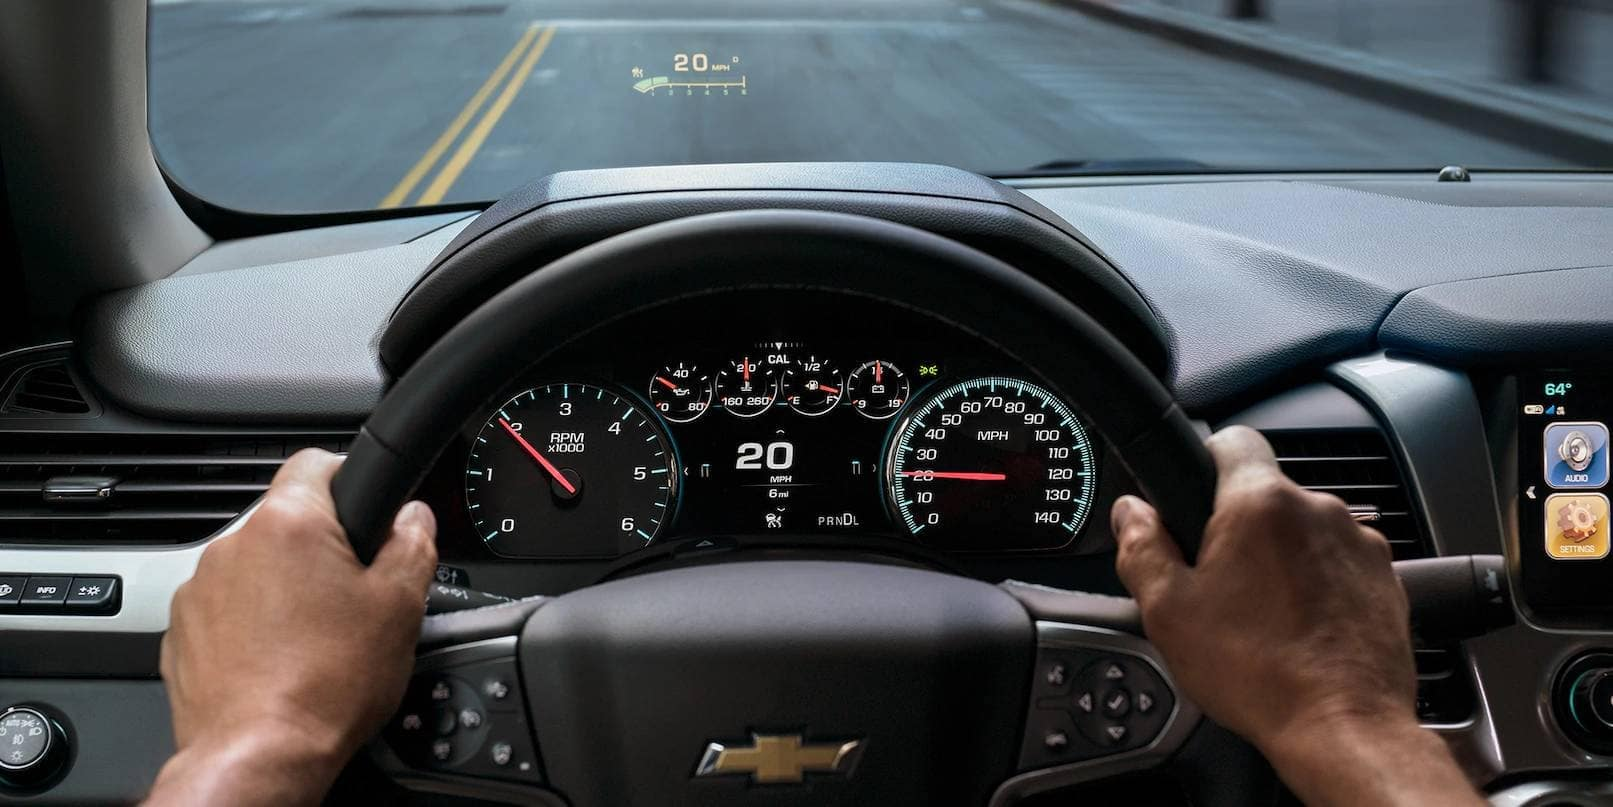 2019 Chevrolet Tahoe Interior Dashboard Driving on Highway